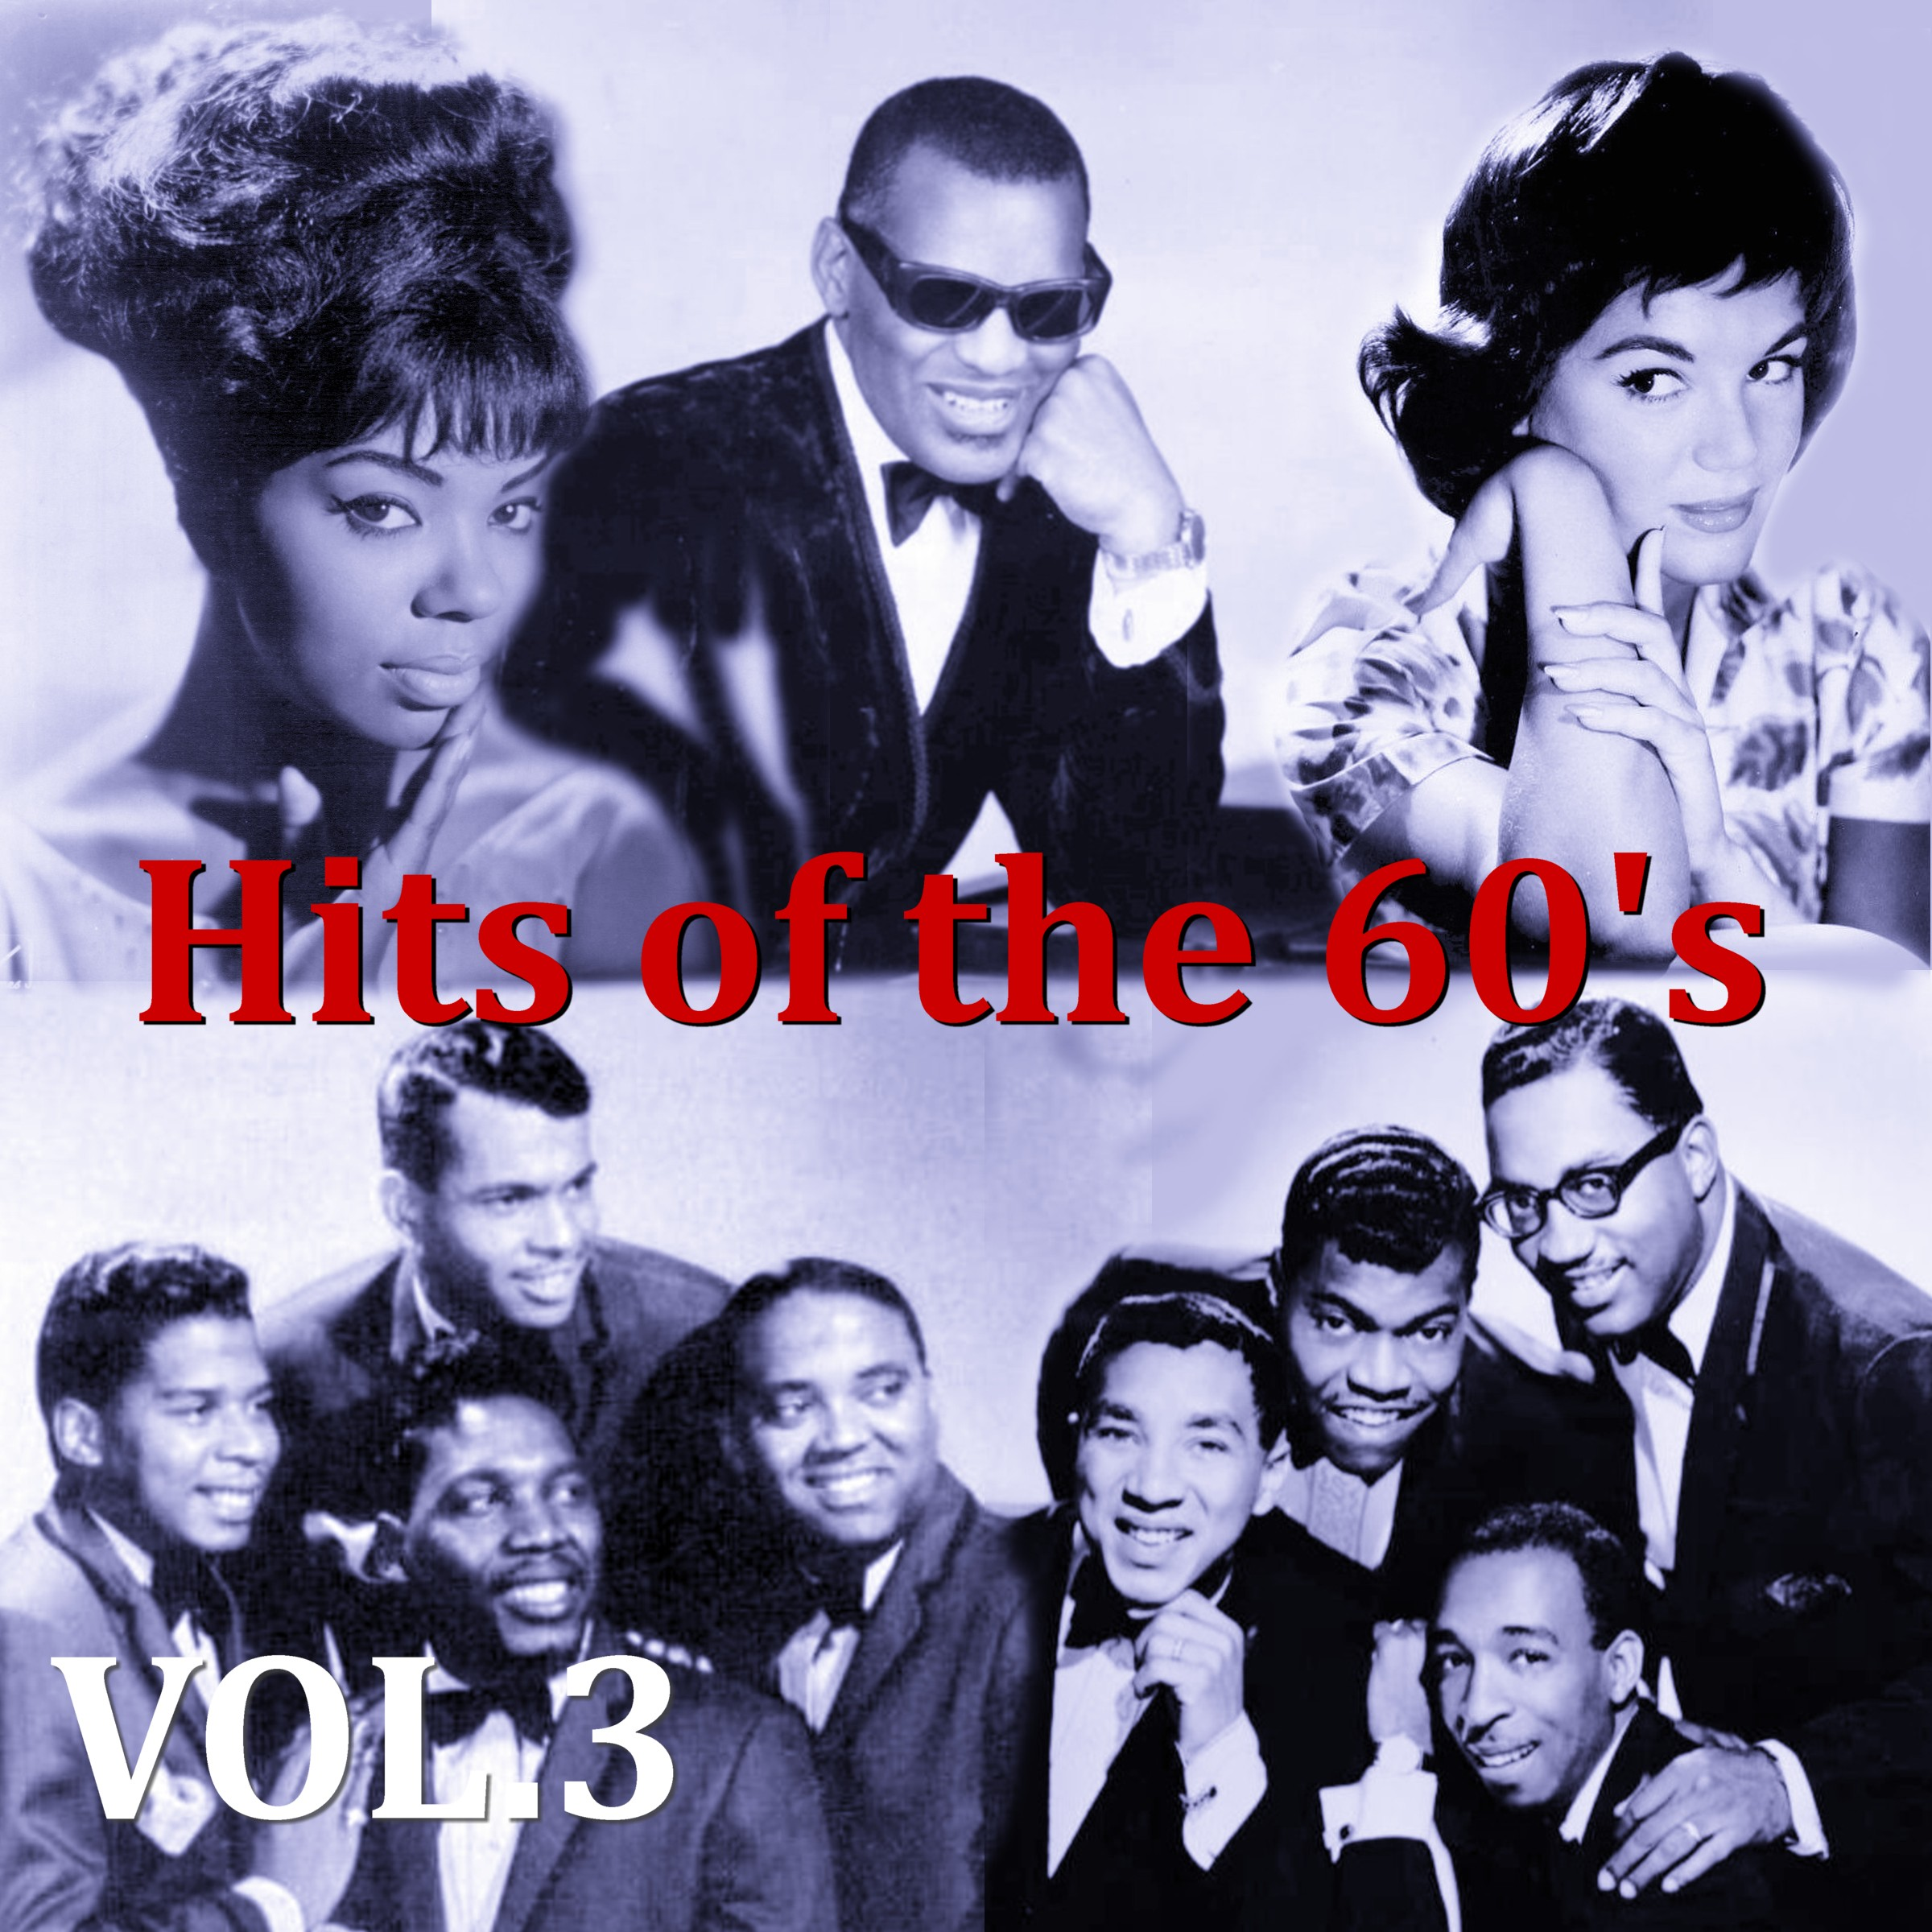 Hits of the 60's Vol.3